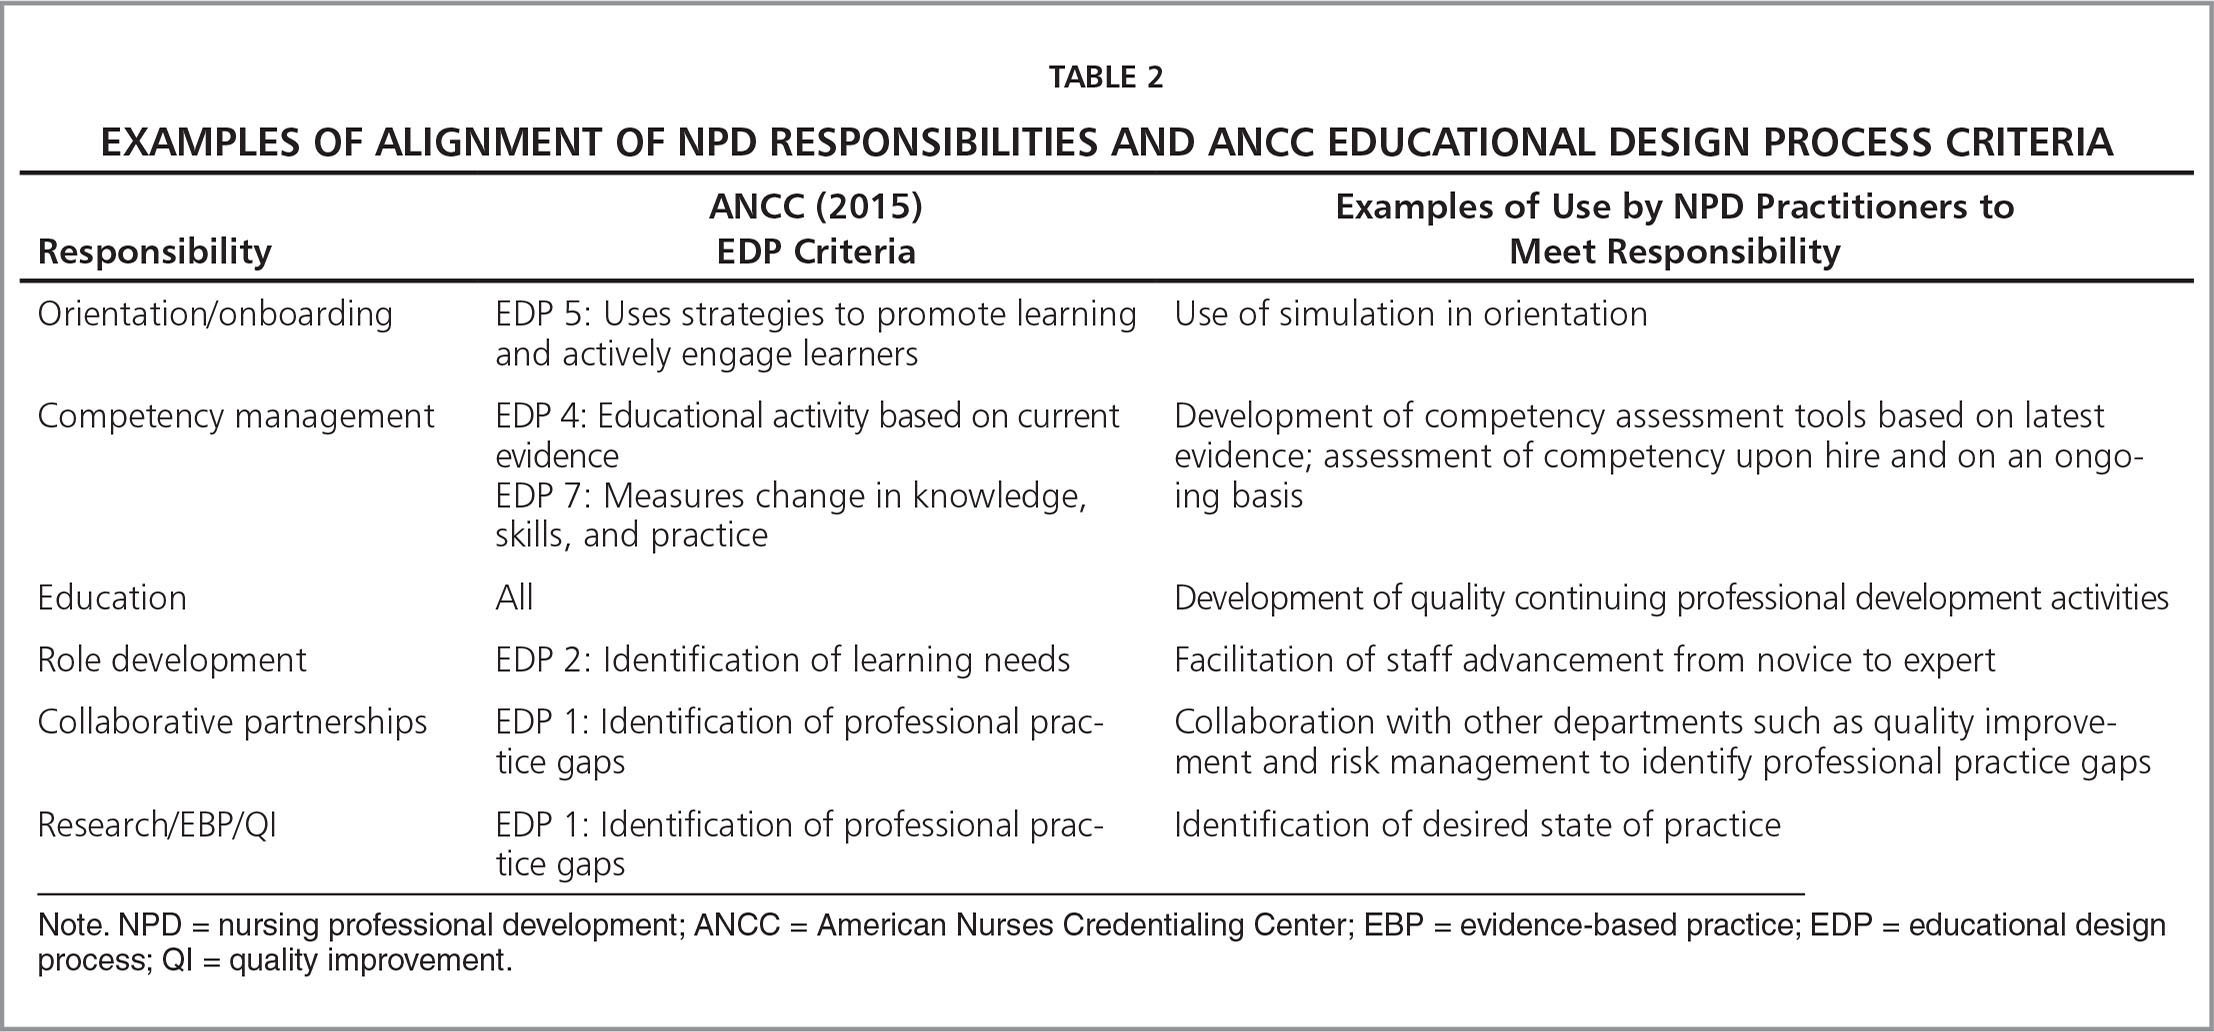 Examples of Alignment of NPD Responsibilities and ANCC Educational Design Process Criteria